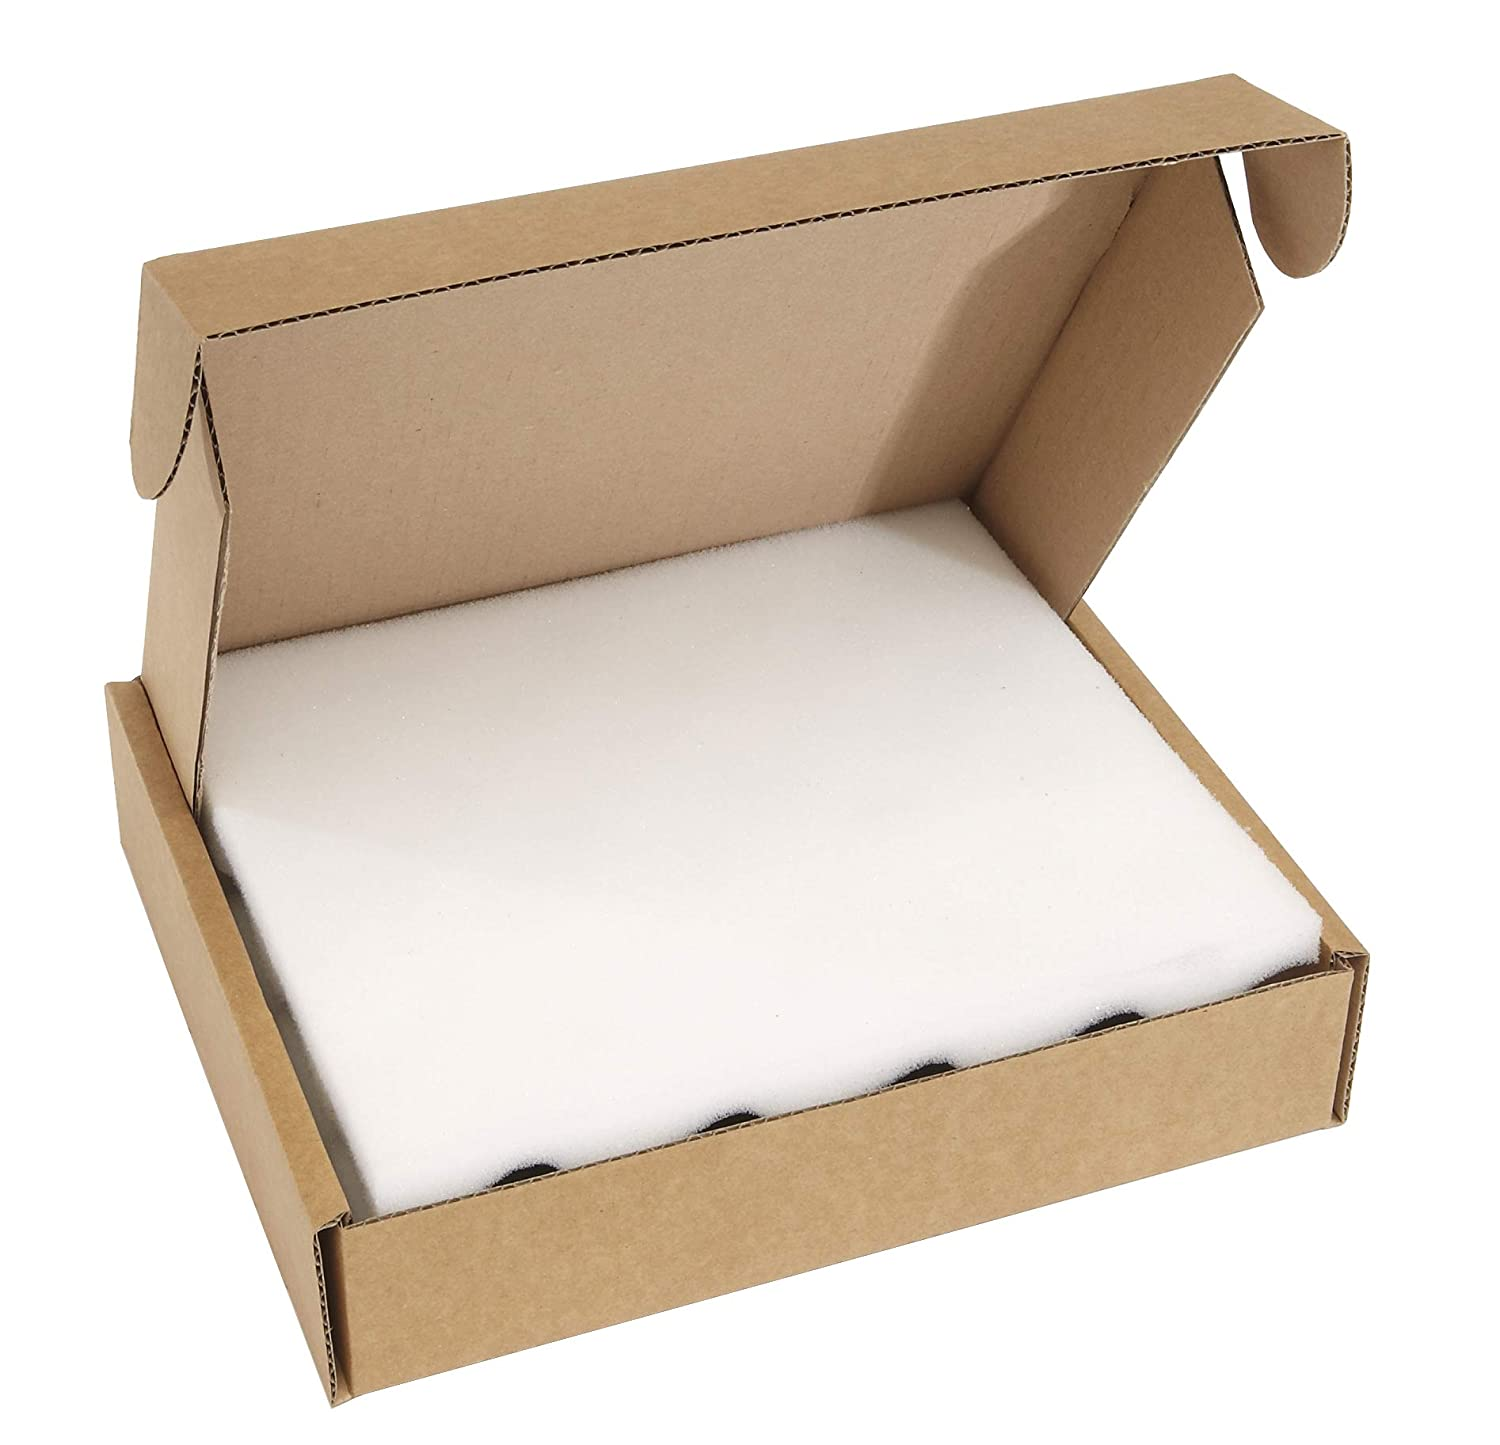 150L x 120W x 50H mm Pack of 25 Brown Cardboard and Foam Postal Boxes 25mm Thick Foam